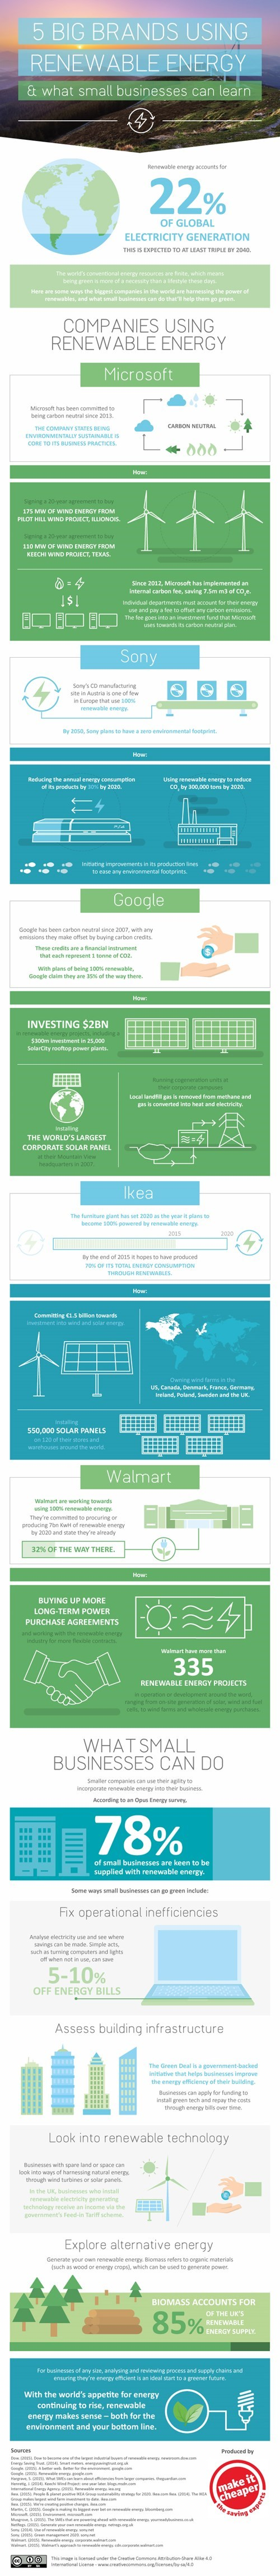 5 Big Brands Using Renewable Energy & What Small Businesses Can Learn